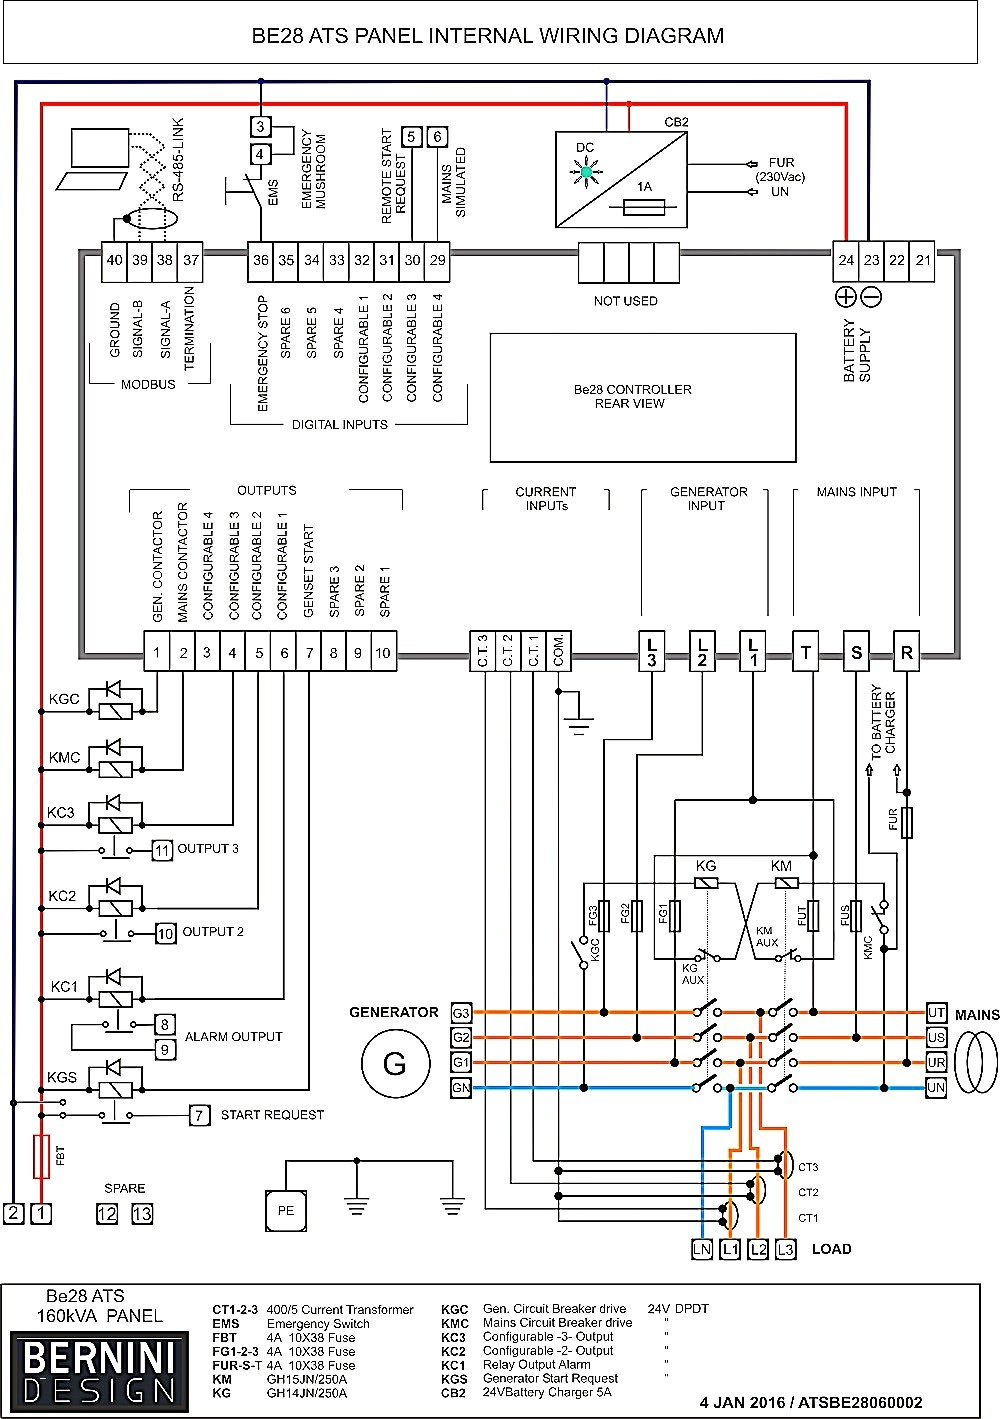 asco 7000 series ats wiring diagram Collection-Transfer Switch Wiring  Diagram Inspirational Generac Automatic Beauteous